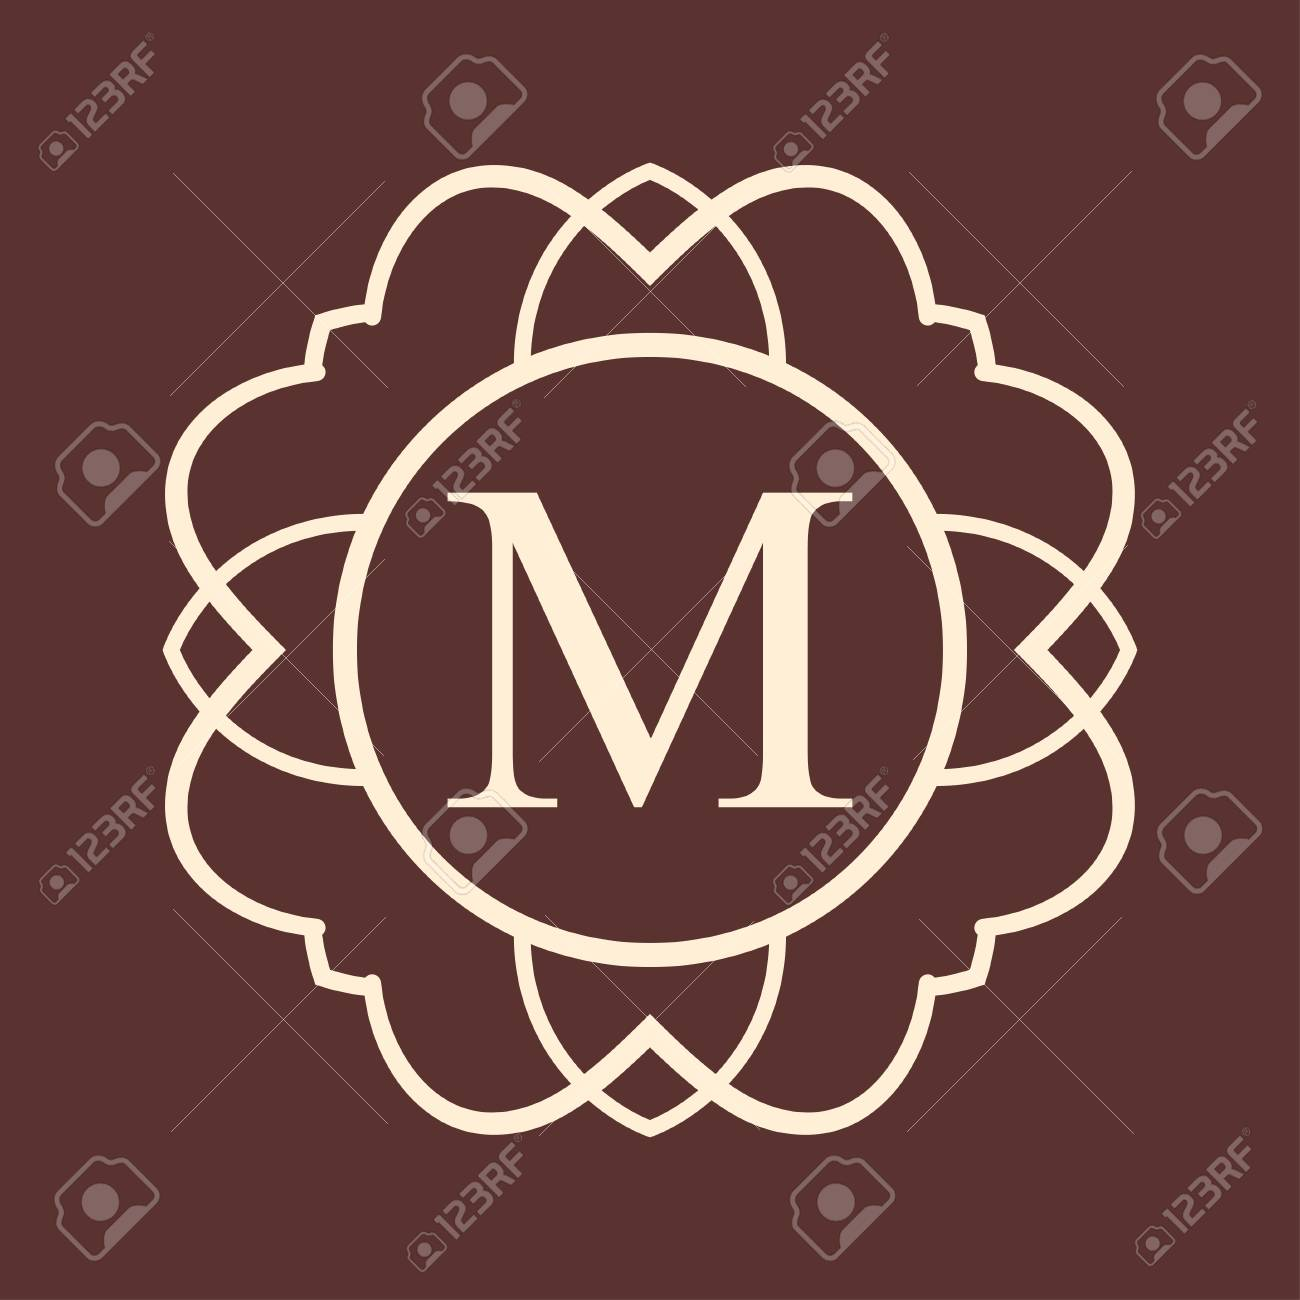 d231b9c688 Letter M Vintage ornamental monogram. Retro luxury design with ornate  elements and place for letter